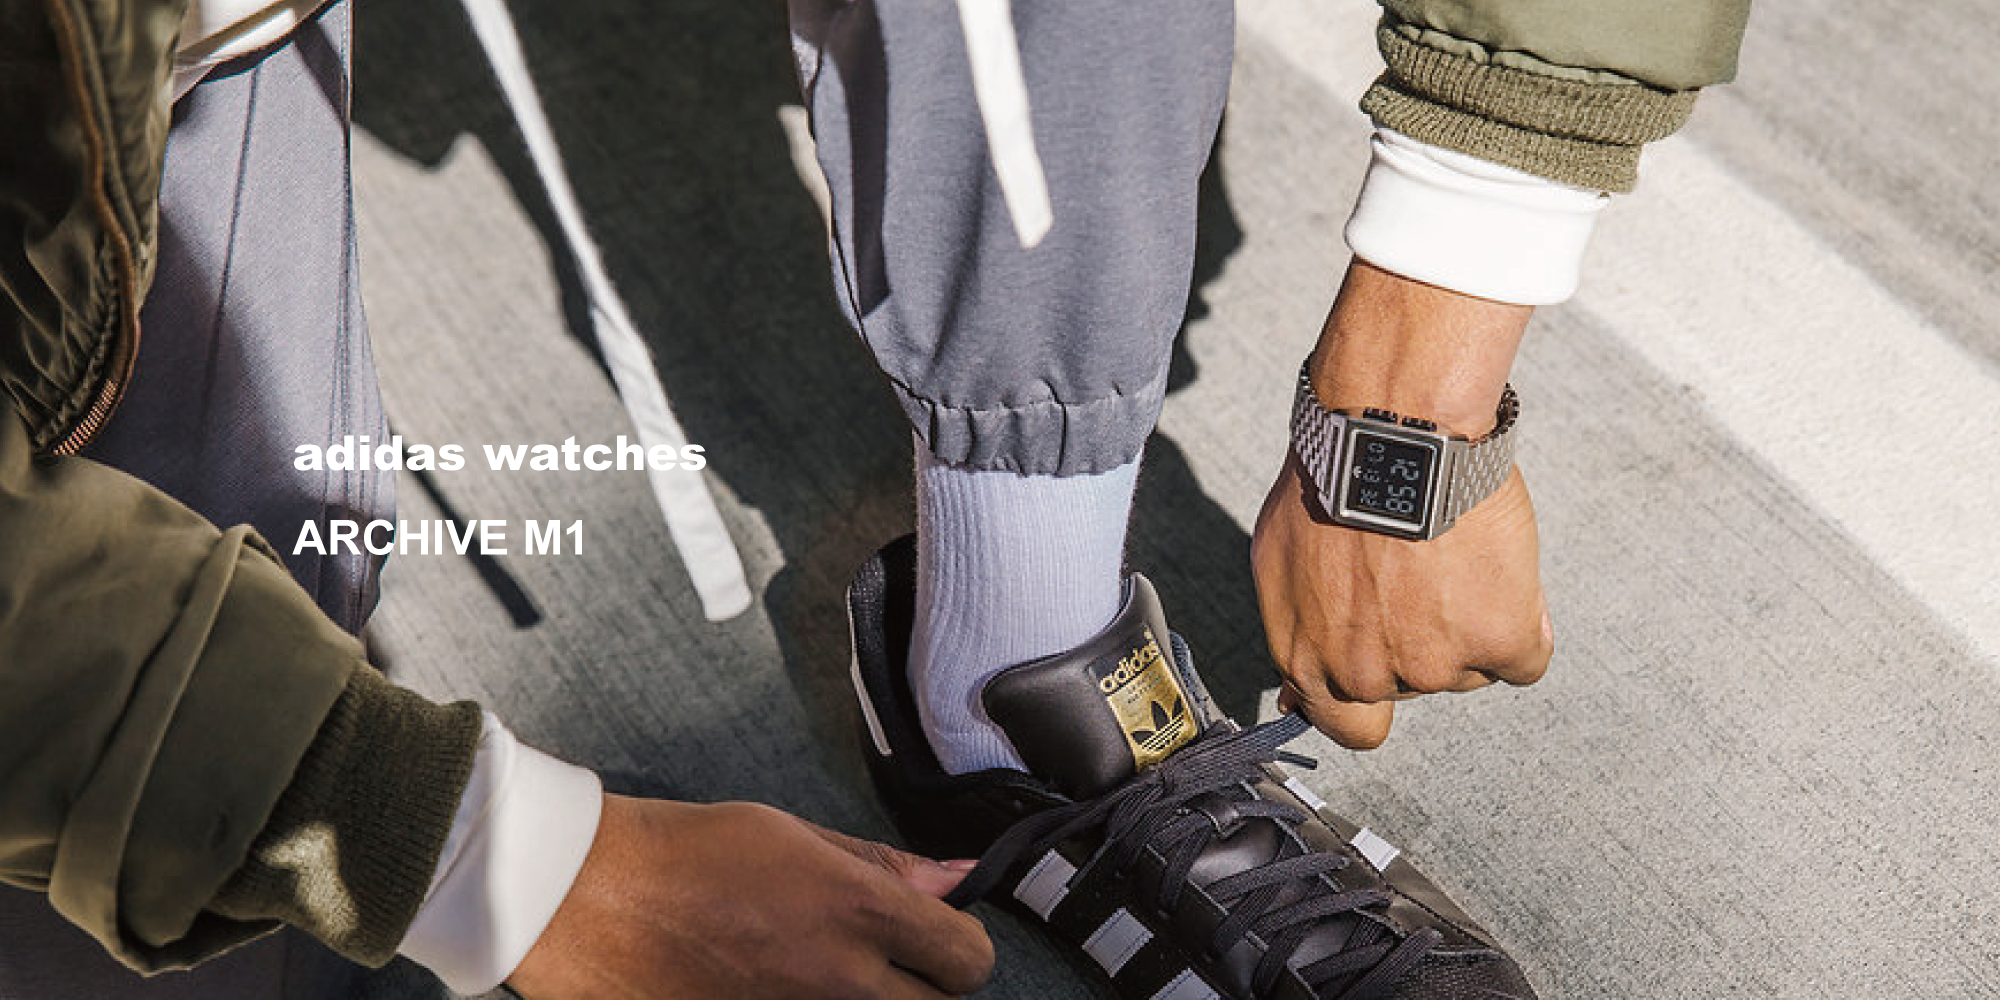 adidas watch archive m1